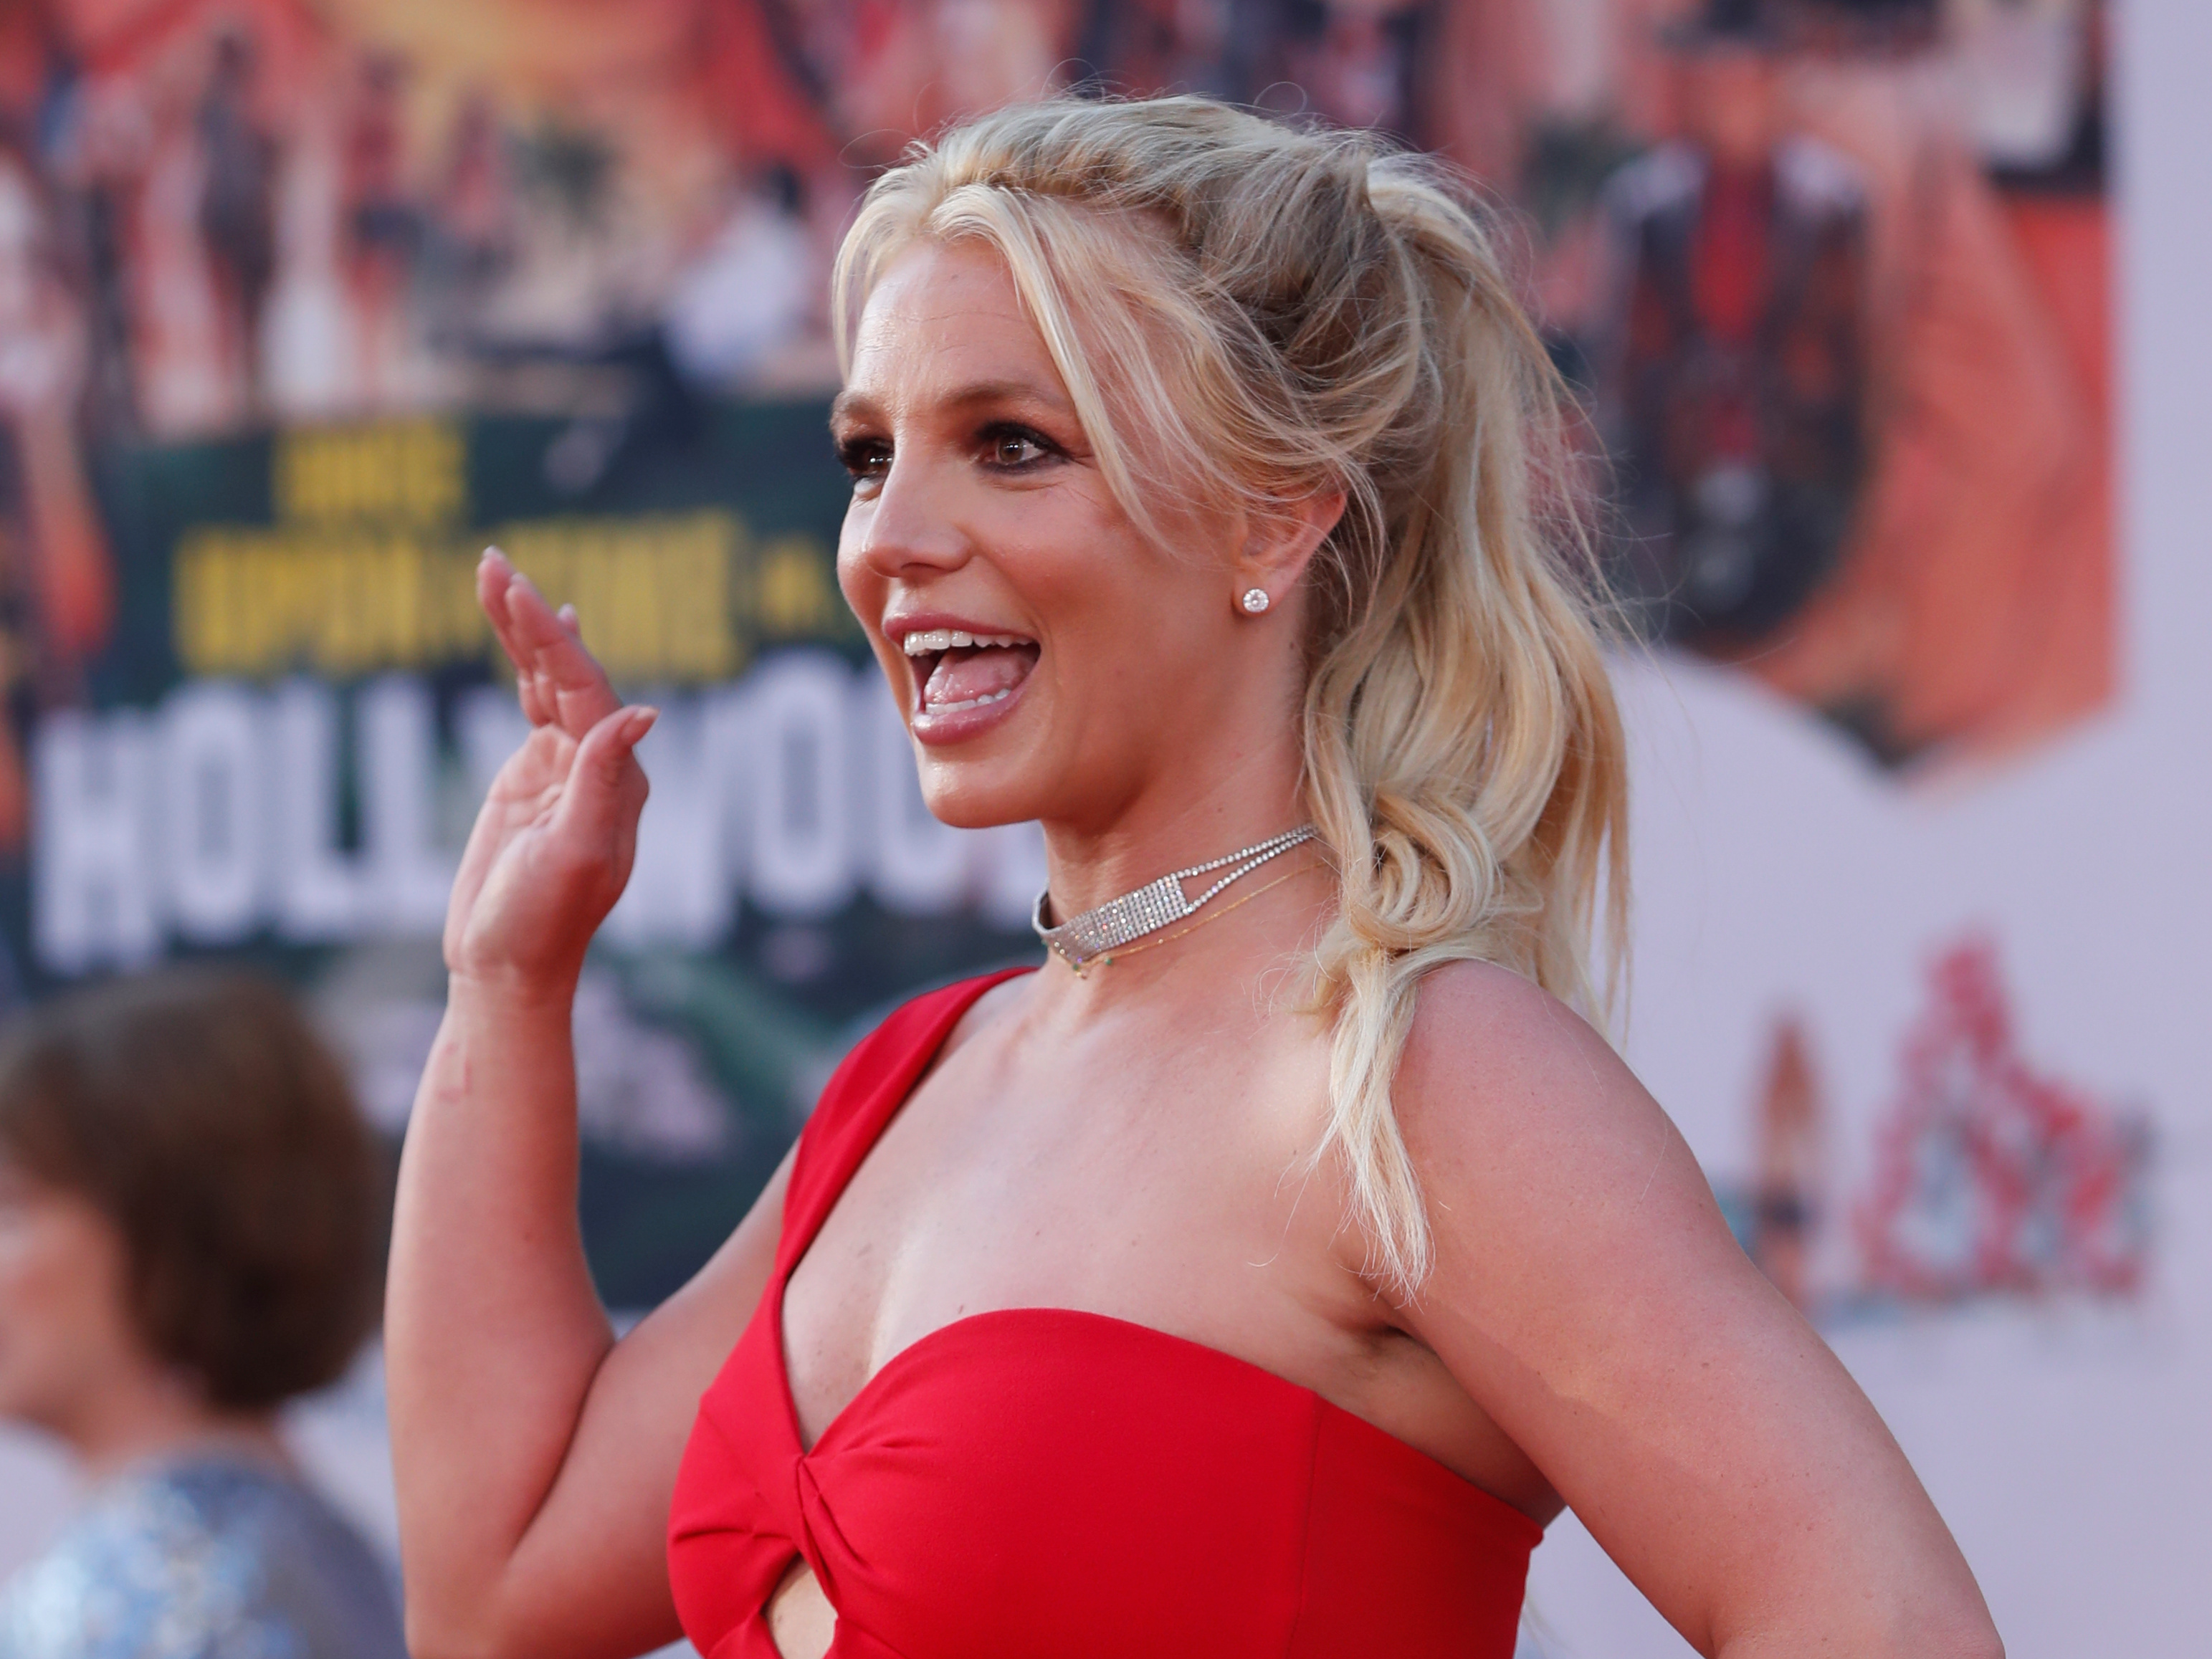 Britney Spears hasn't legally managed her $59 million fortune in 12 years. Here is how the pop icon makes and spends her cash, from Aim shopping trips to California mansions.